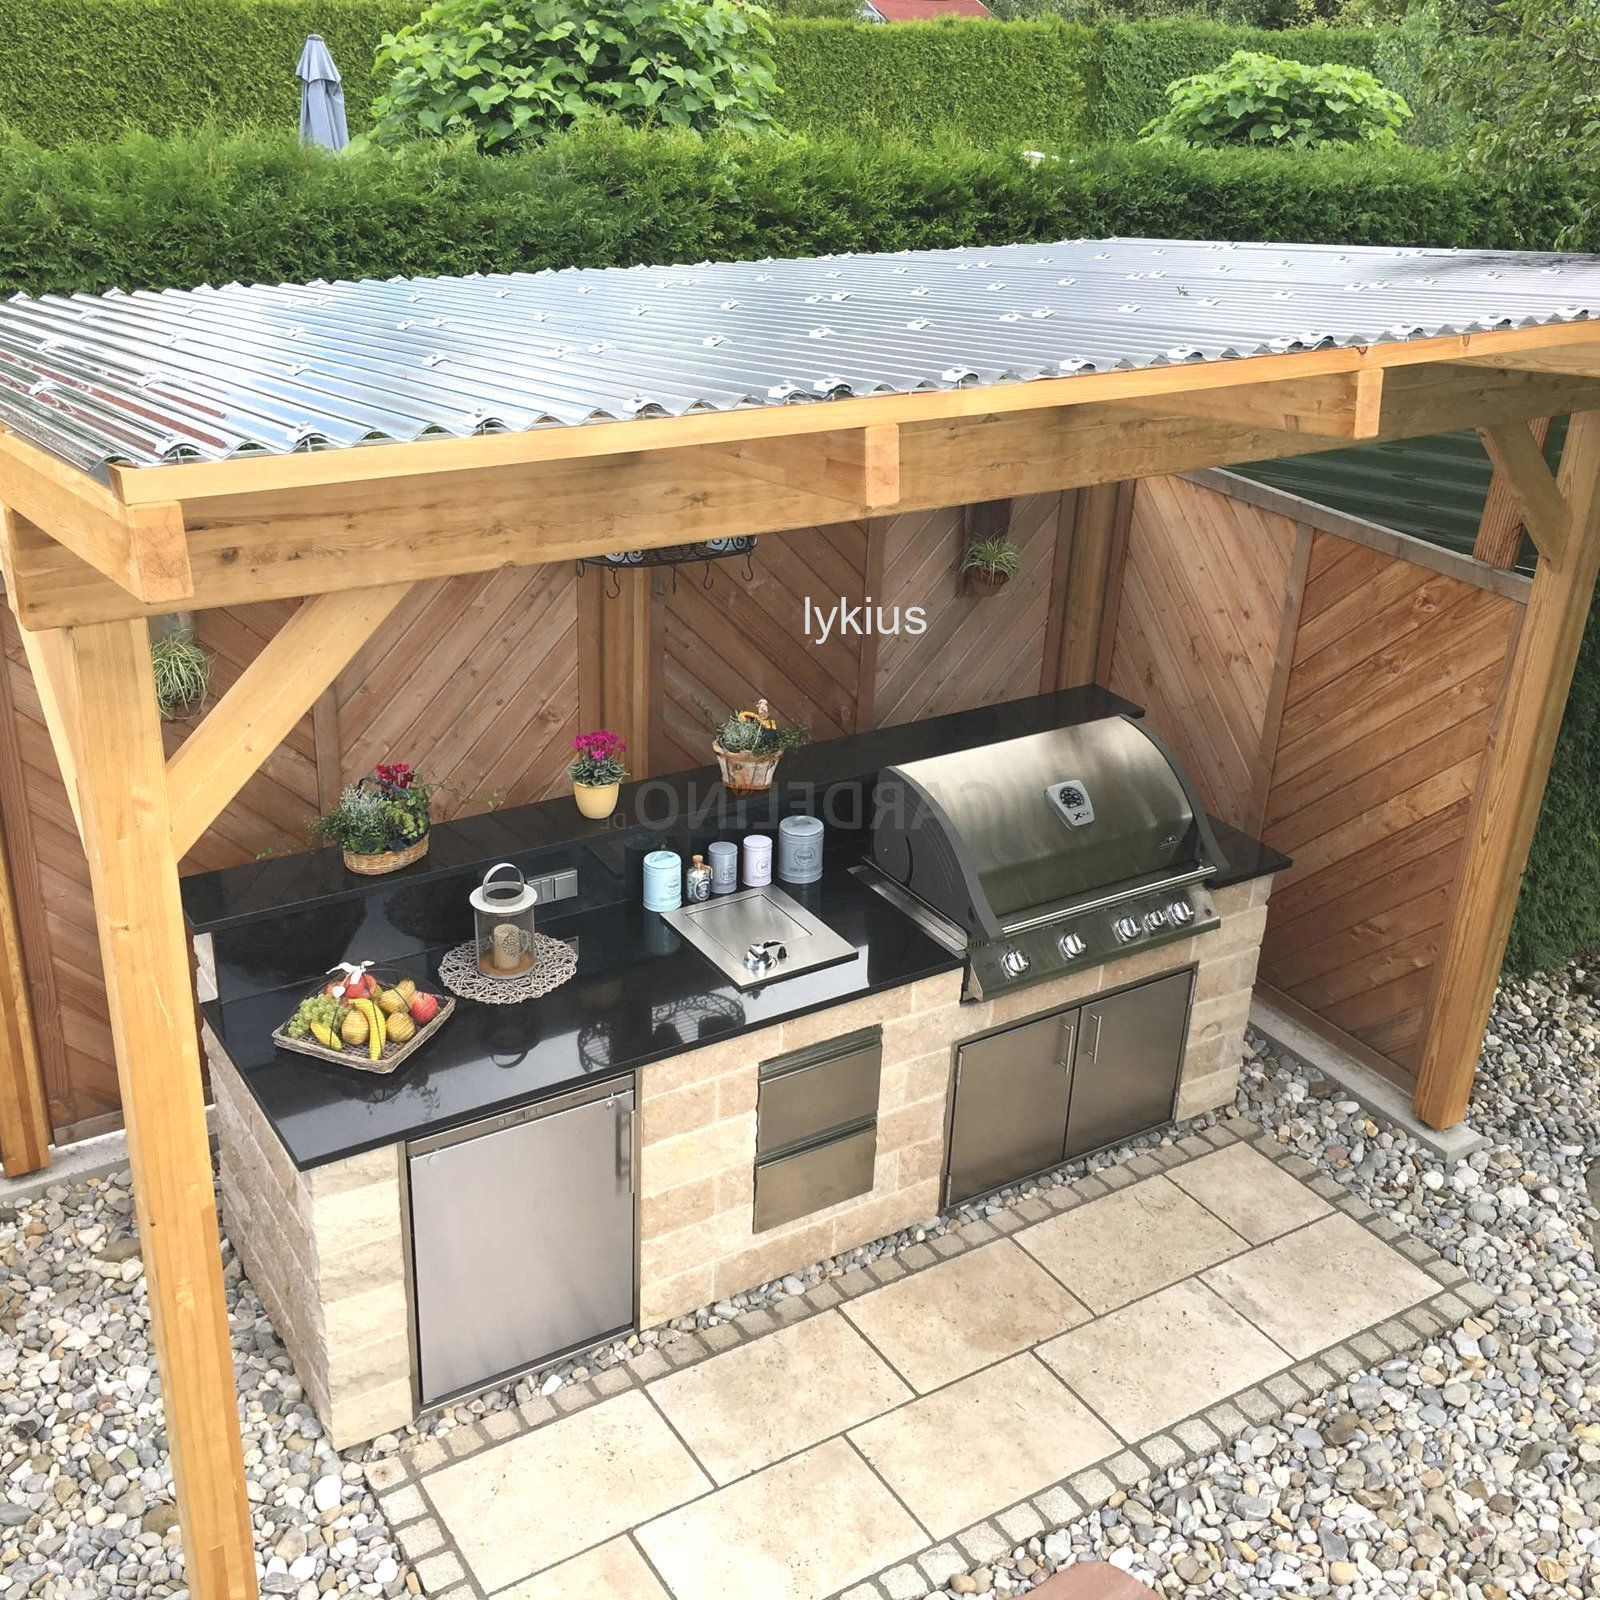 Bbq Corner Garden Garden Garden Bbq Corner Garden Garden Garden Trend Outdoor Bbq Corne In 2020 Outdoor Bbq Kitchen Diy Outdoor Kitchen Small Outdoor Kitchens